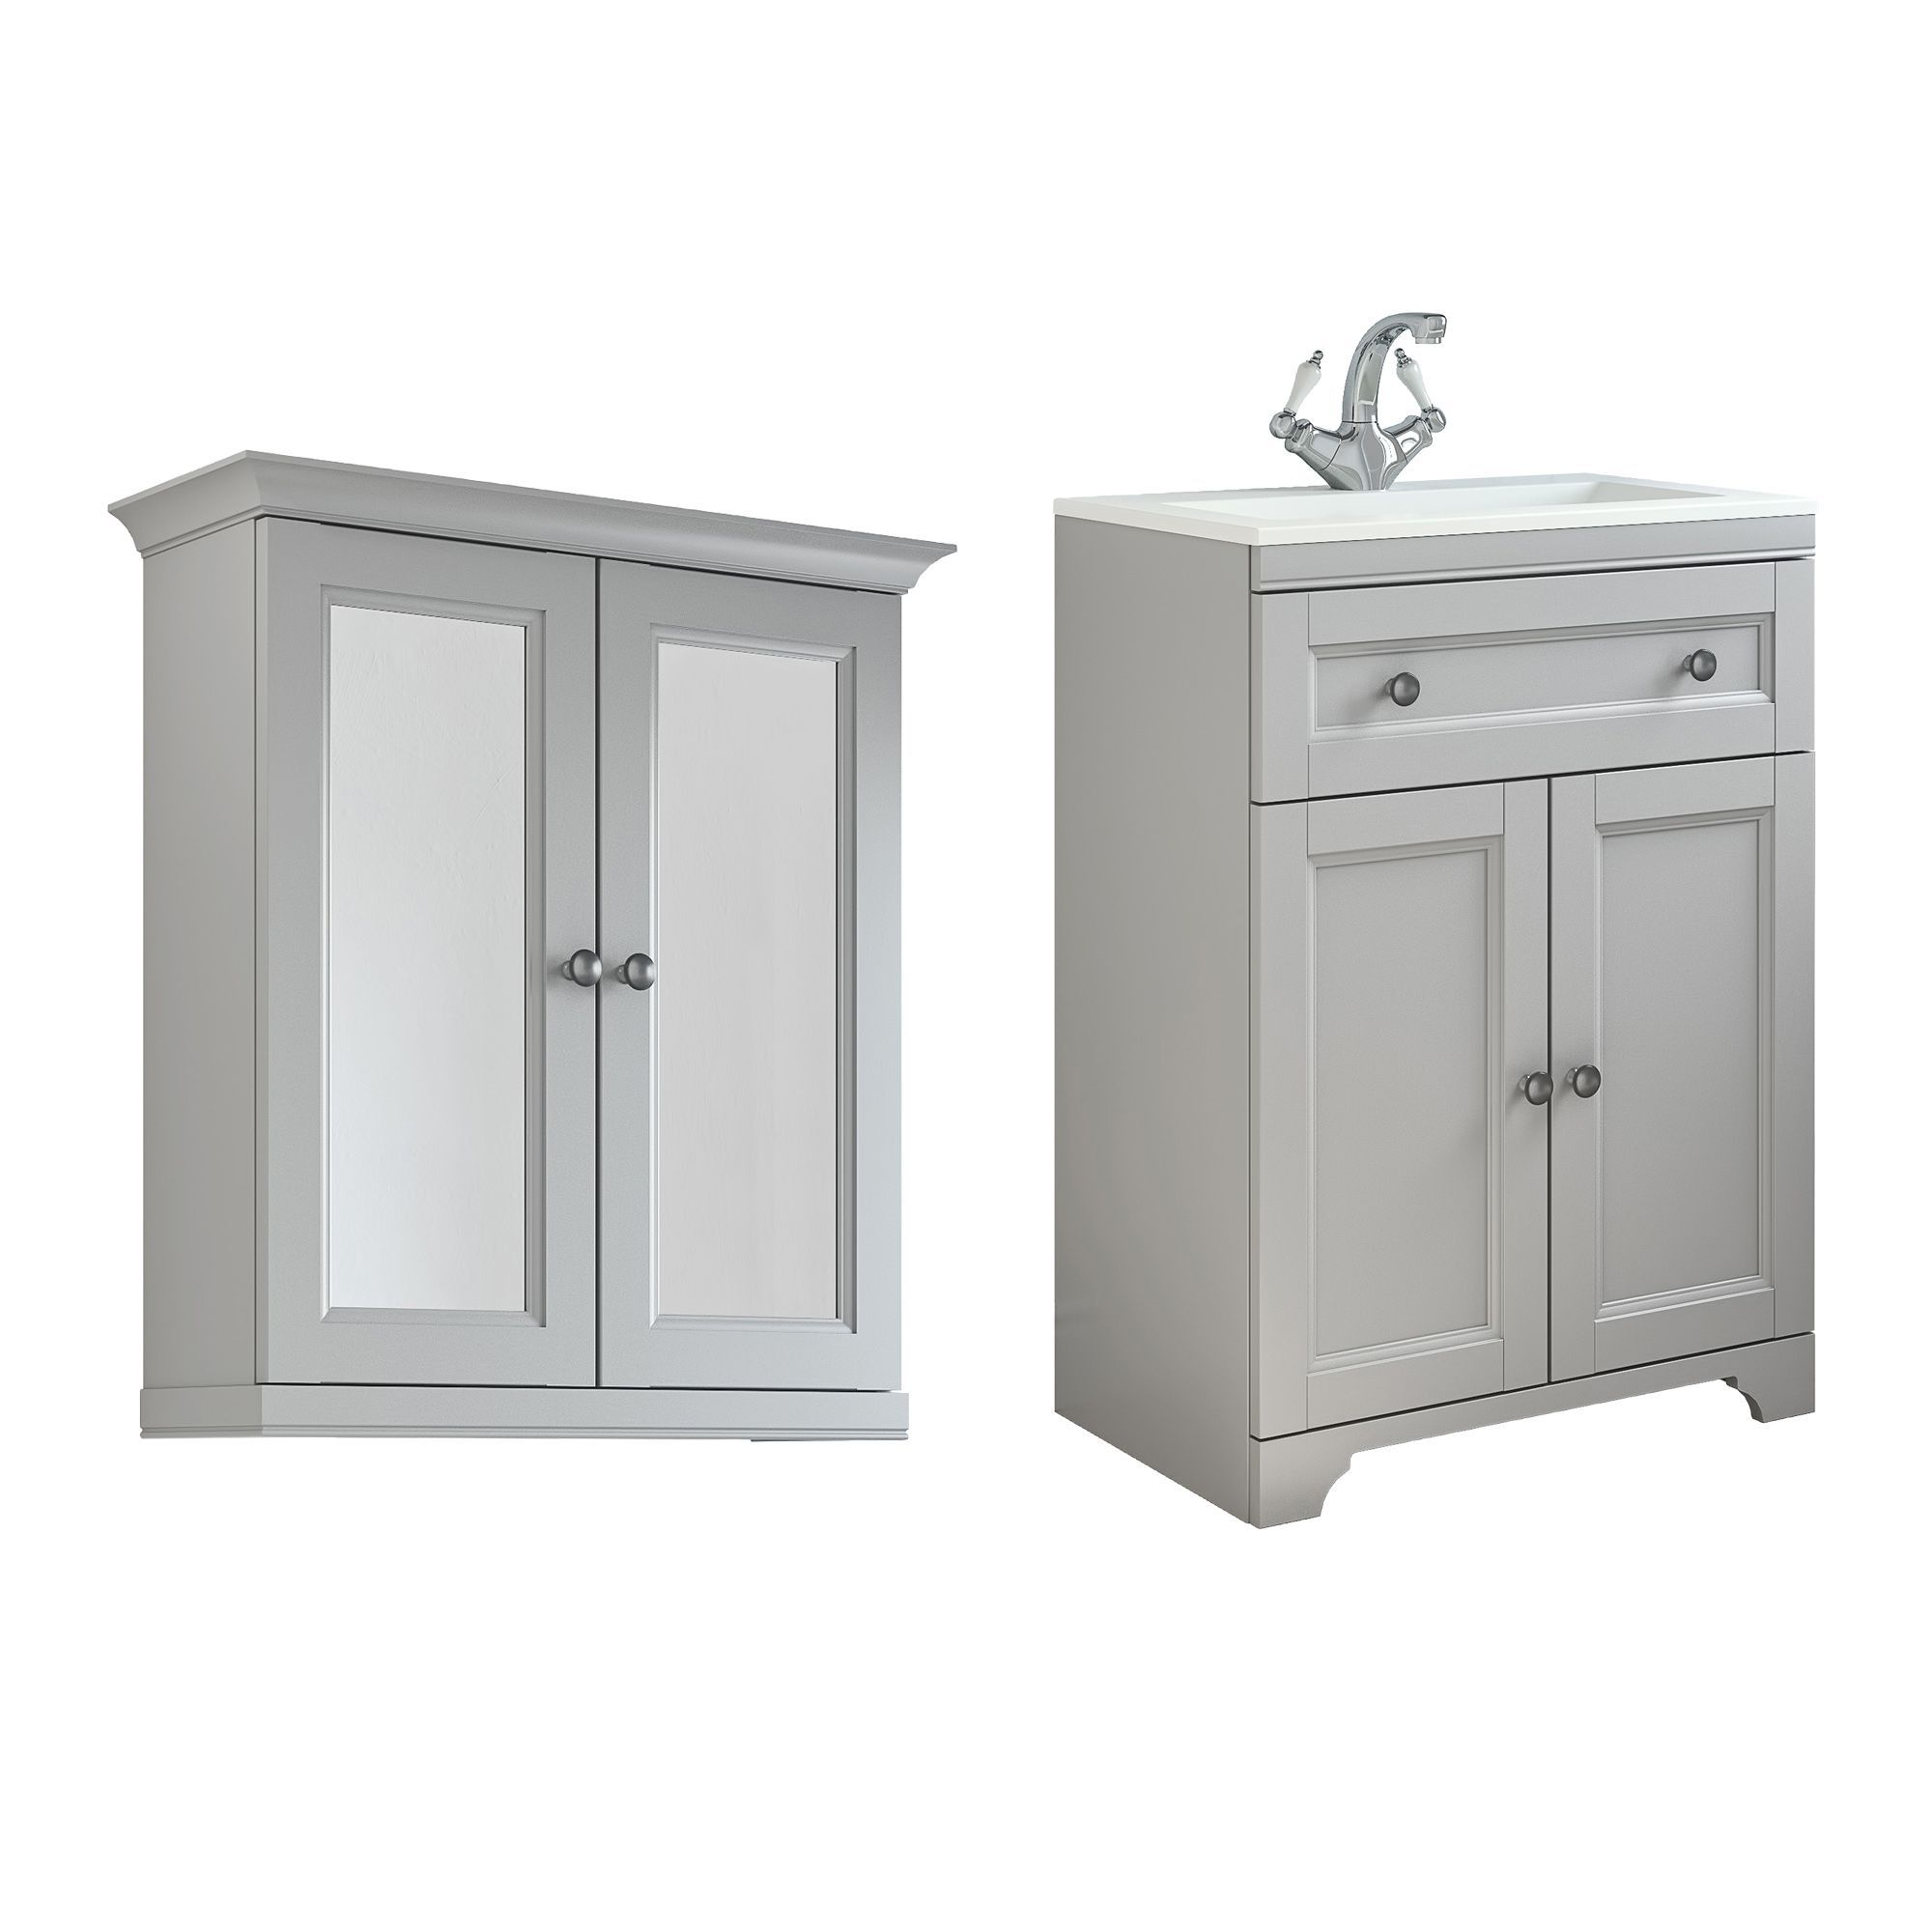 Vanity Unit Lights : Cooke & Lewis Chadleigh Matt Light Grey Vanity Unit with Basin & Mirror Cabinet Departments ...